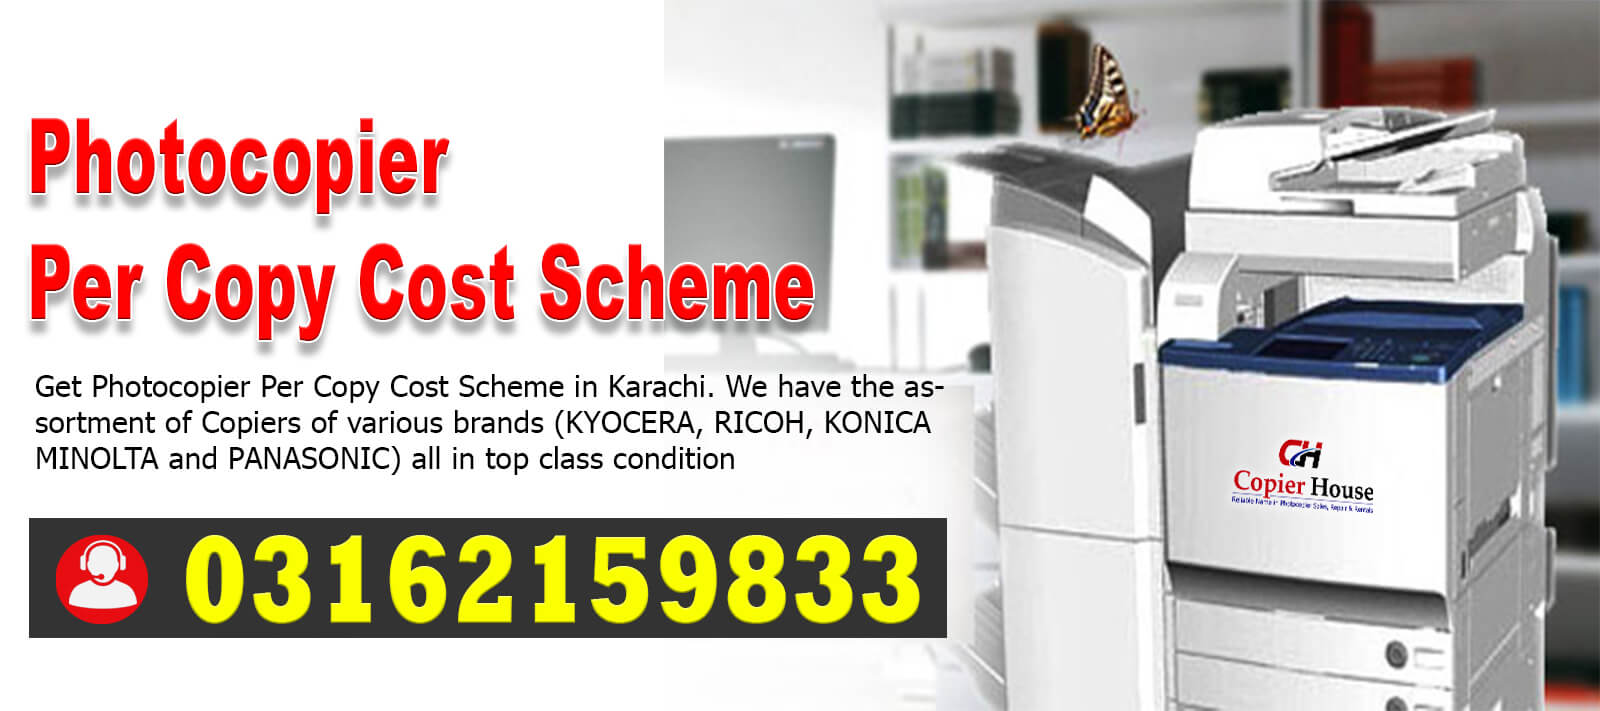 photocopier-per-copy-cost-scheme-in-karachi-Pakistan